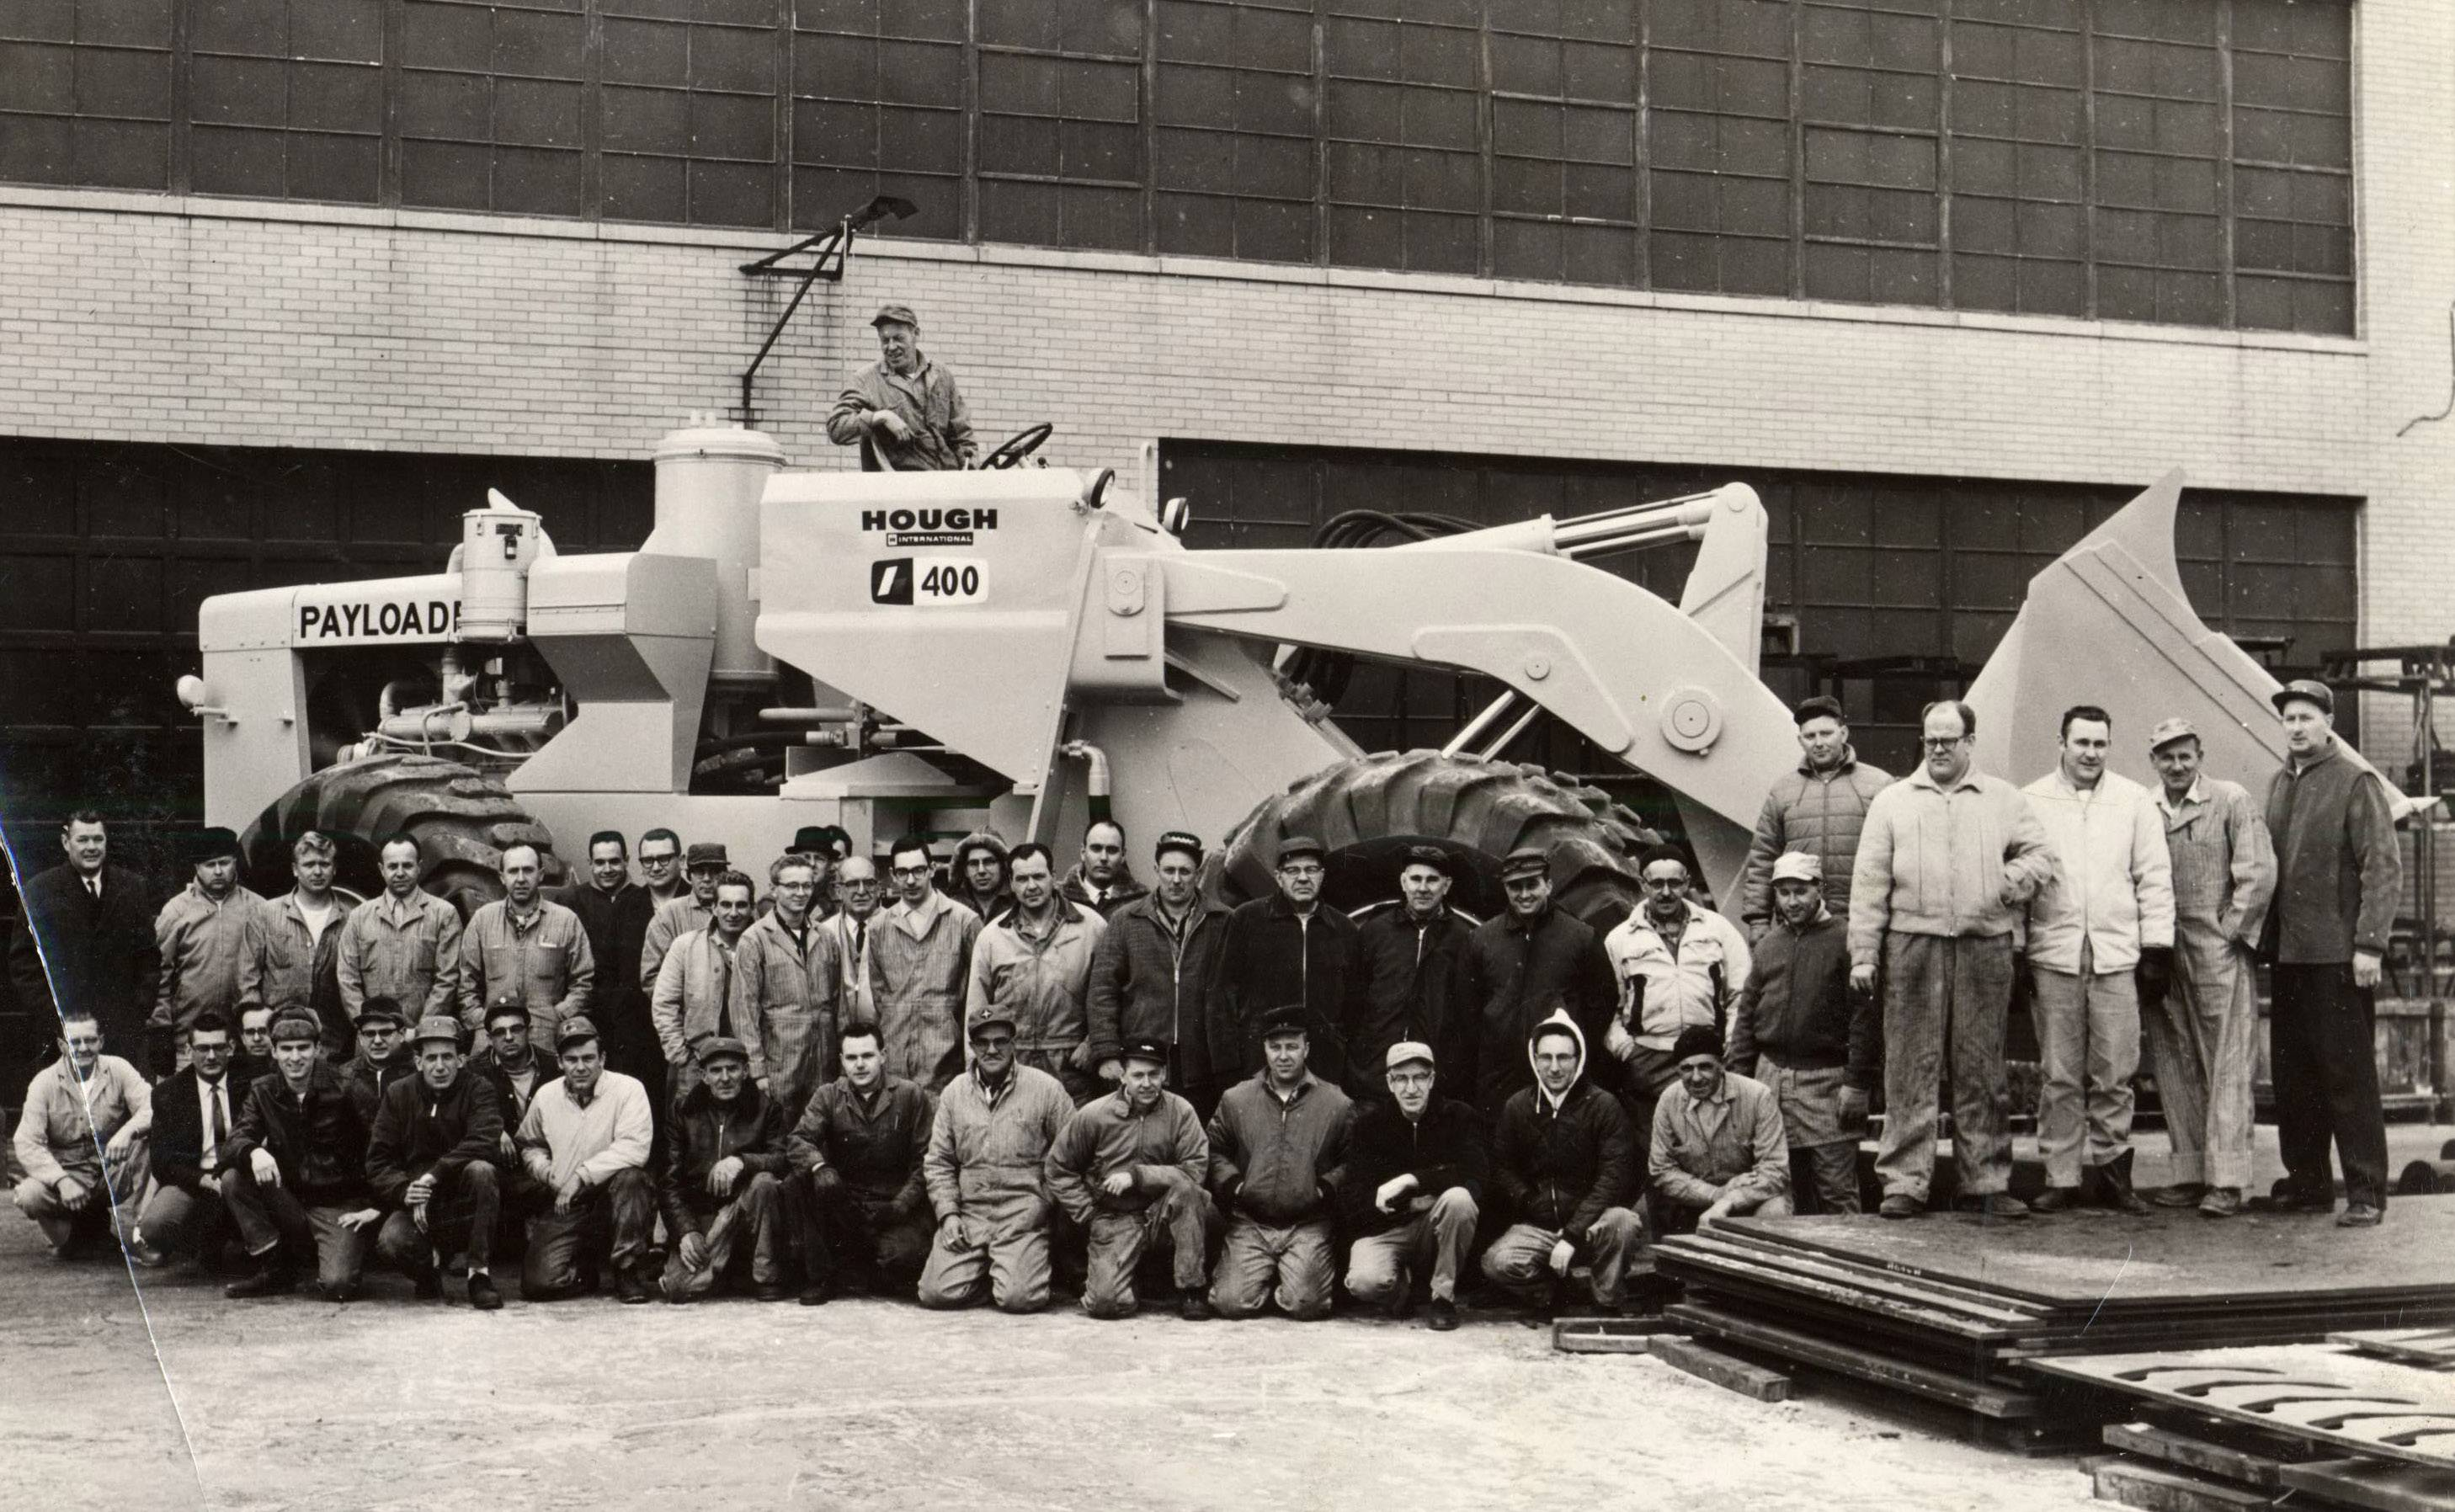 Hough-International Harvester employees with the PAYloader tractor shovel at the Libertyville manufacturing plant circa 1965.